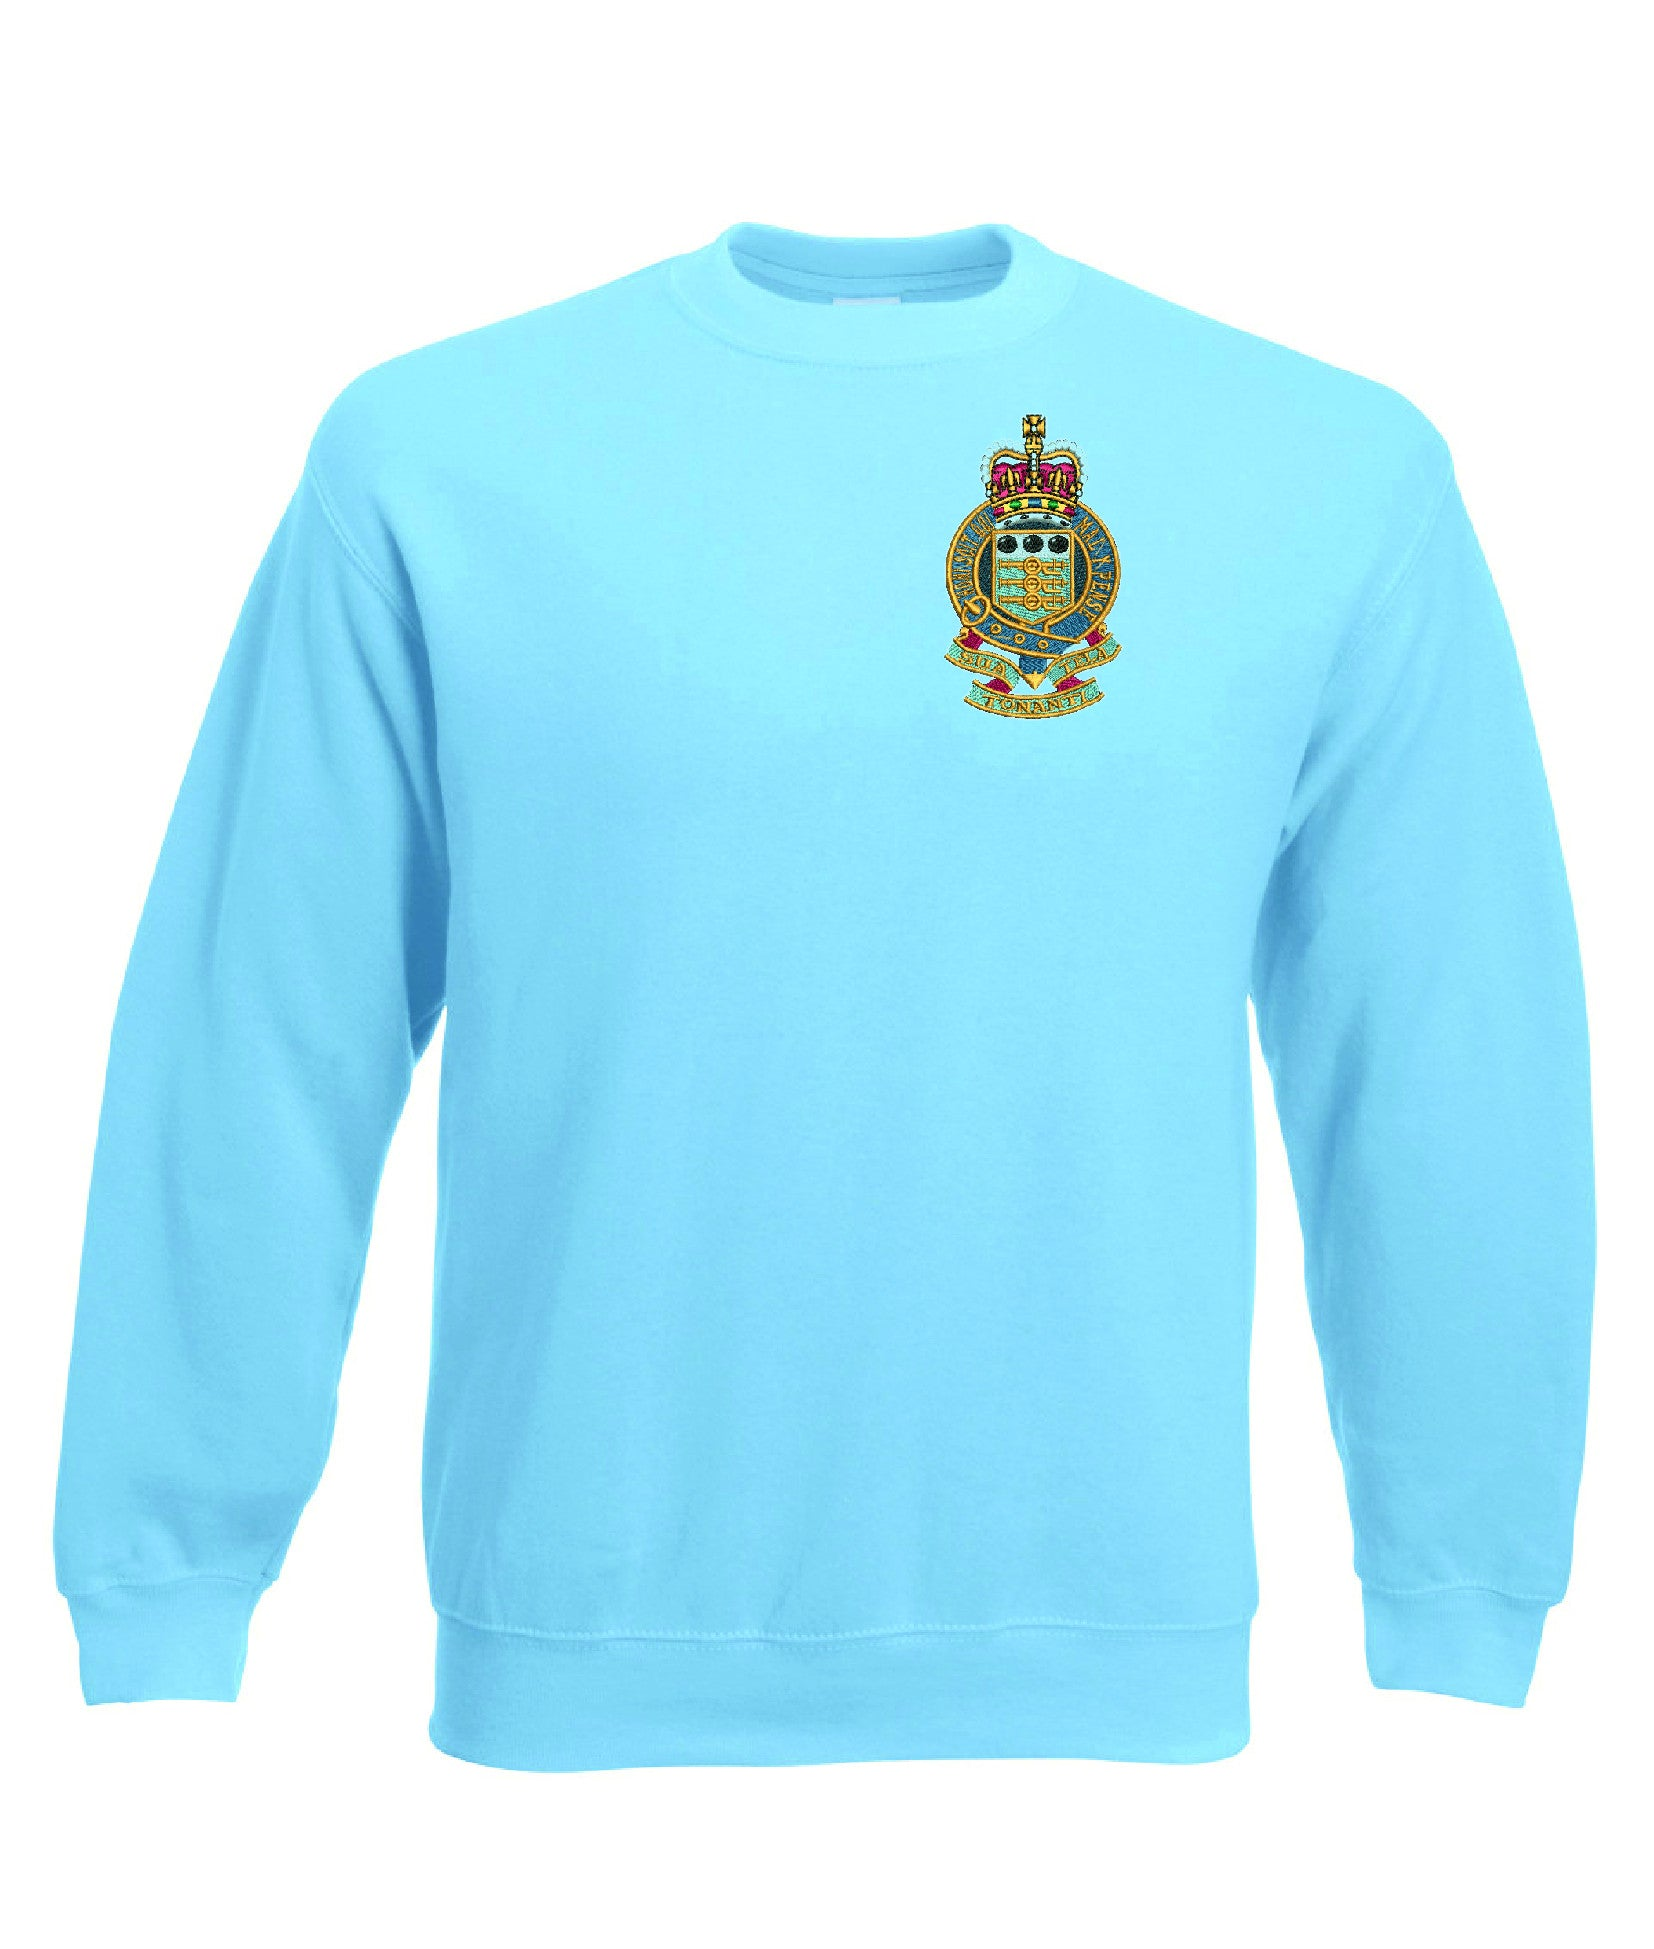 Royal Army Ordnance Corps Sweatshirt